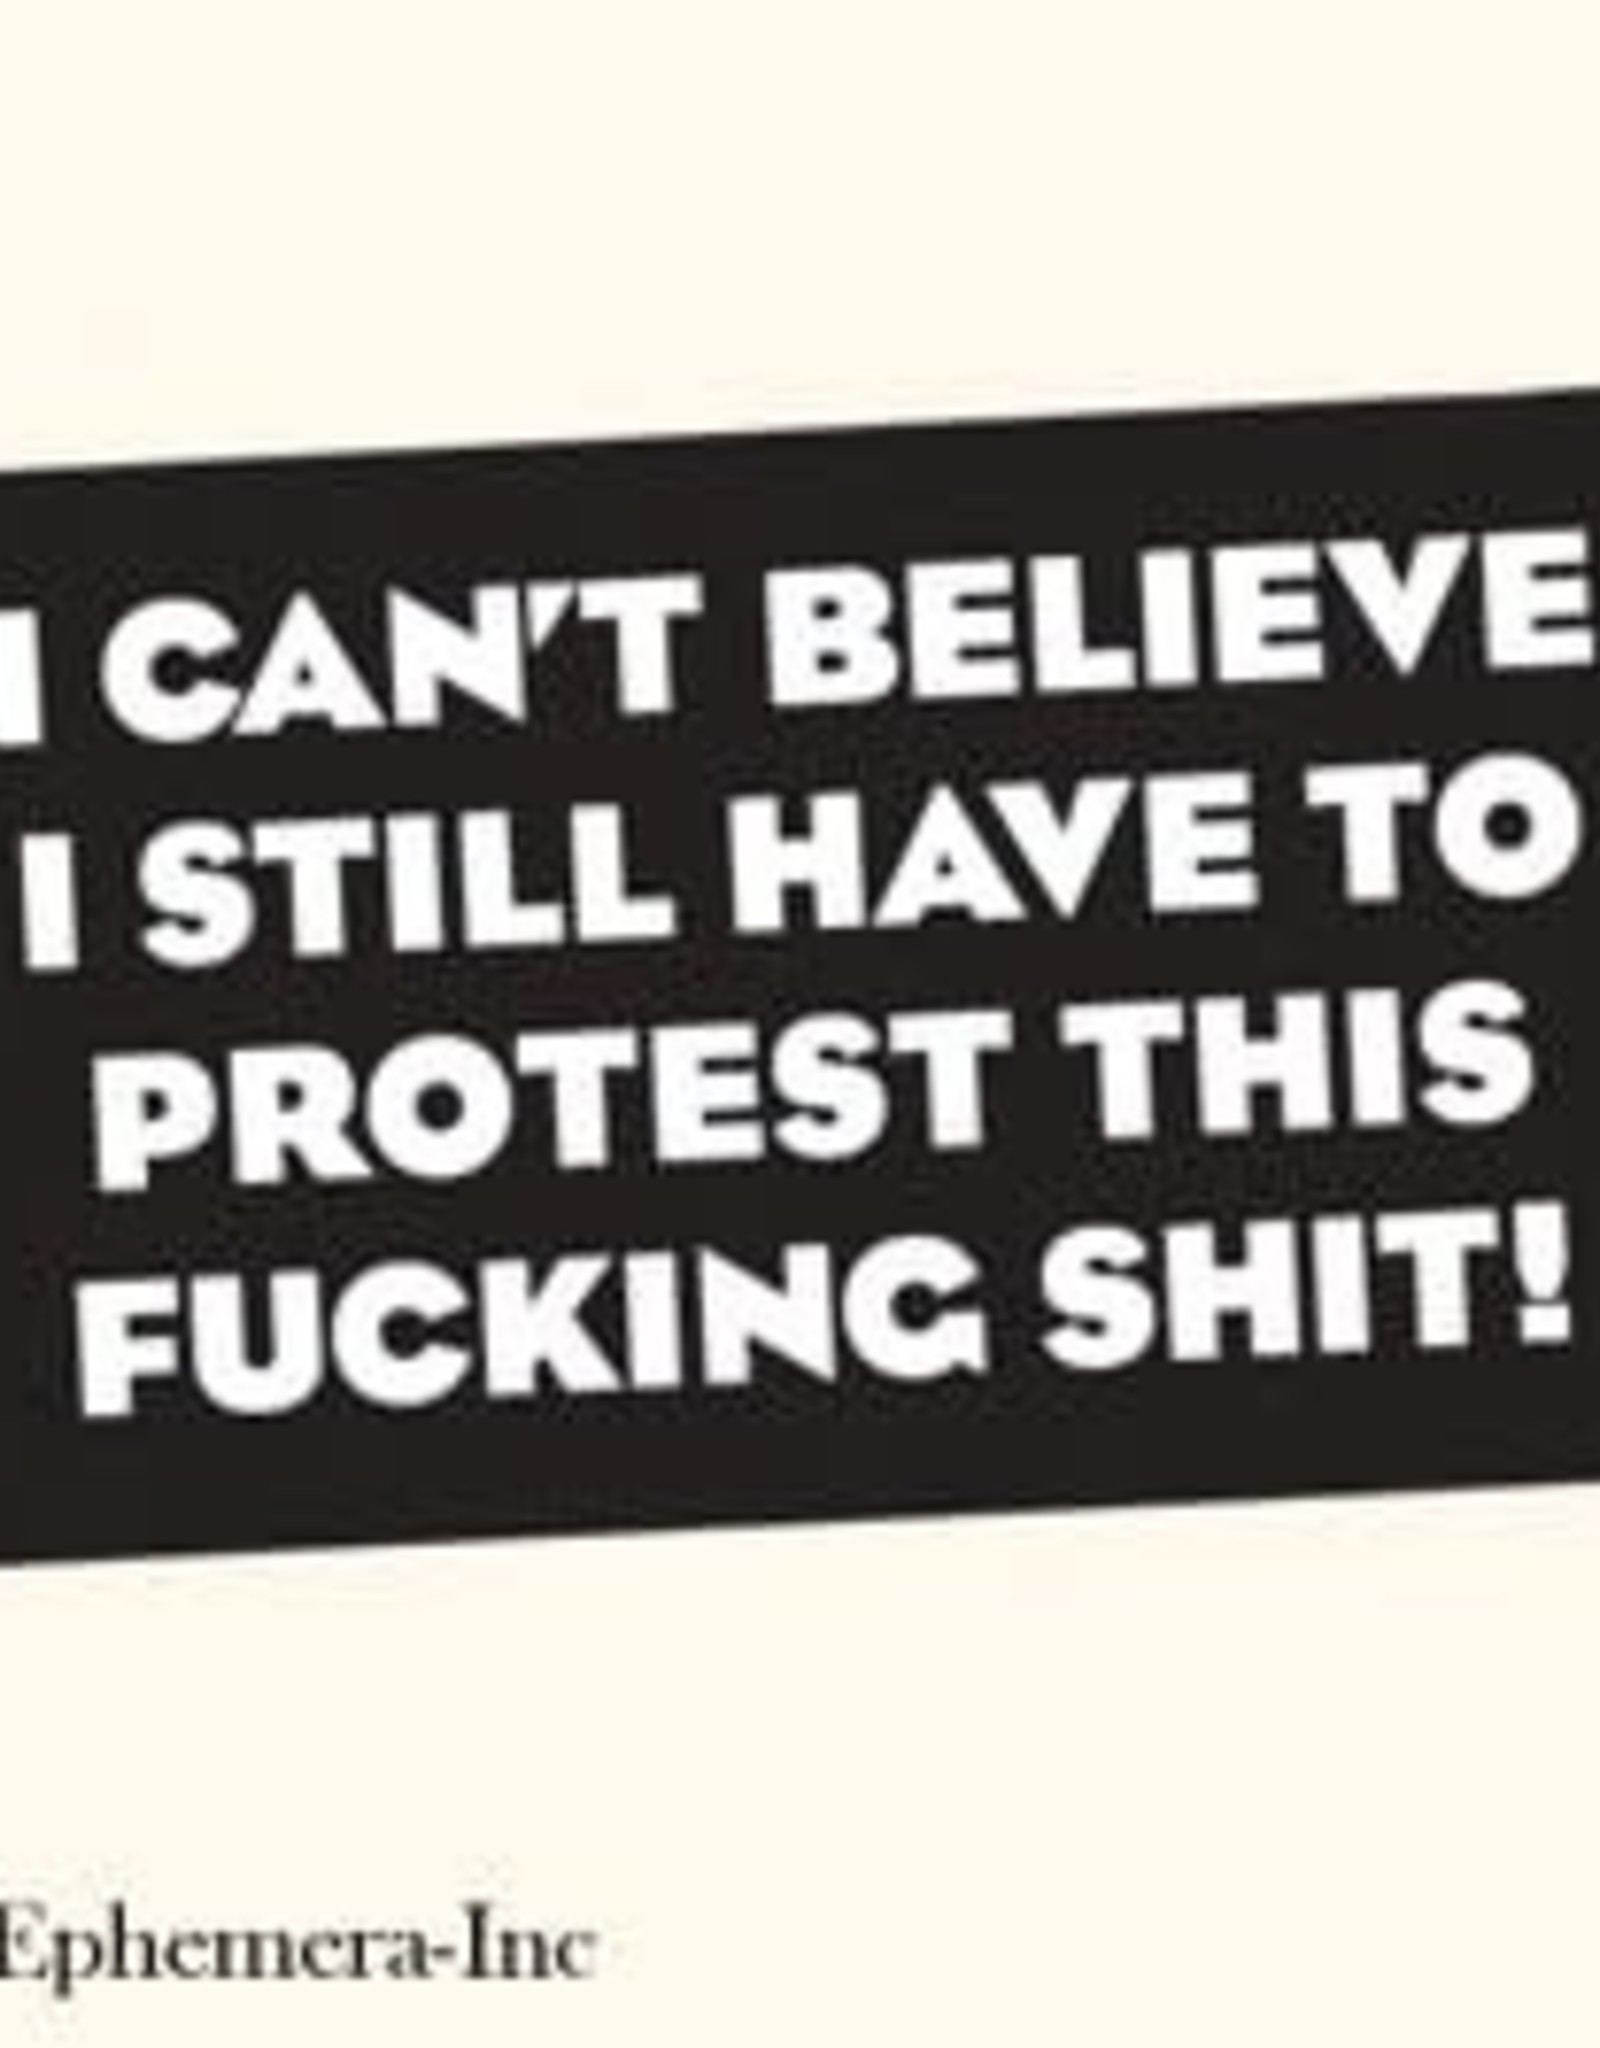 Sticker - I Can't Believe I Still Have To Protest This Fucking Shit!